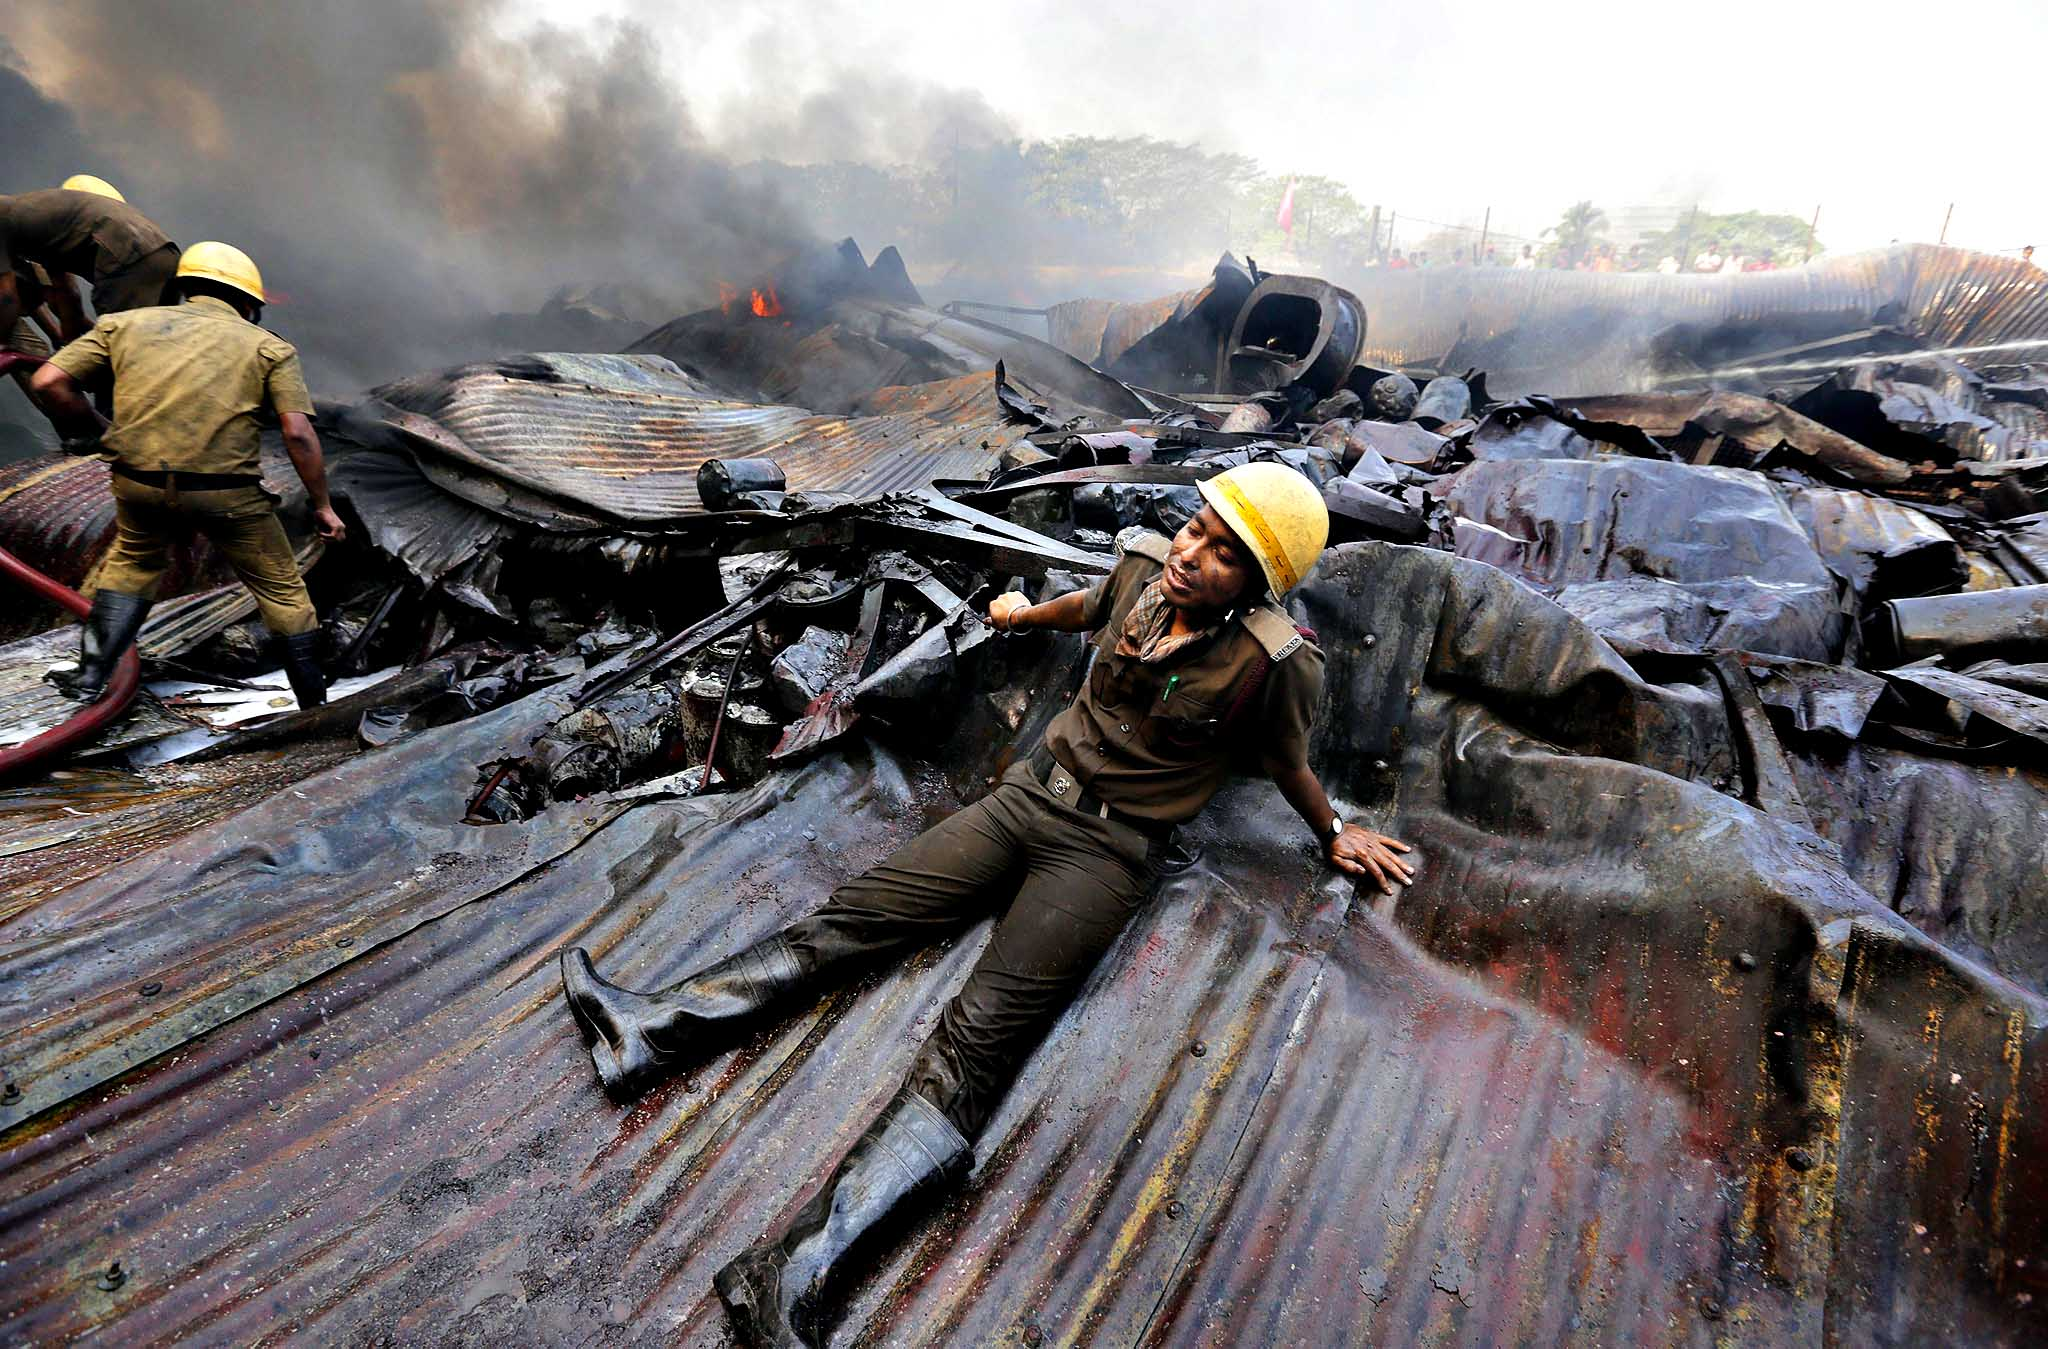 An exhausted firefighter rests on debris as they battle to extinguish a huge fire in a paint factory in Howrah, 30 km west of Calcutta, Eastern India, 12 March 2014. A major fire broke out at a factory of Shalimar Paints Limited in Howrah early morning. According to police and media reports, 25 fire engines fought for close to six hours to extinguish the blaze. Noboby was injured.